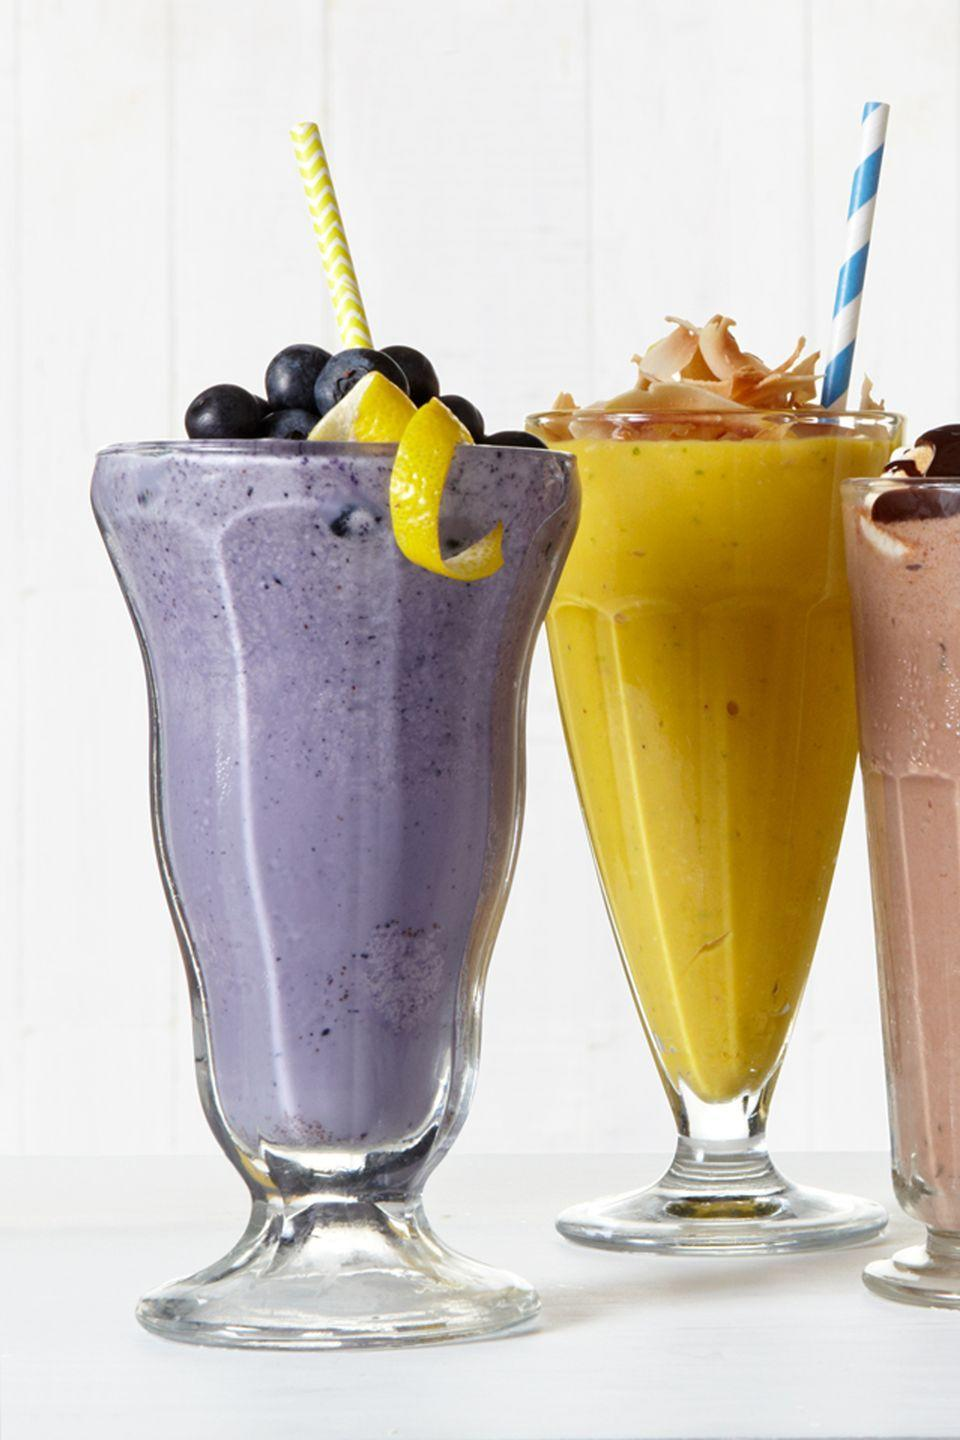 """<p>Enjoy blueberry pie à la mode in this spectacular summertime shake.</p><p>Get the recipe from <a href=""""https://www.delish.com/cooking/recipe-ideas/recipes/a43294/blueberry-lemon-shake/"""" rel=""""nofollow noopener"""" target=""""_blank"""" data-ylk=""""slk:Delish"""" class=""""link rapid-noclick-resp"""">Delish</a>.</p>"""